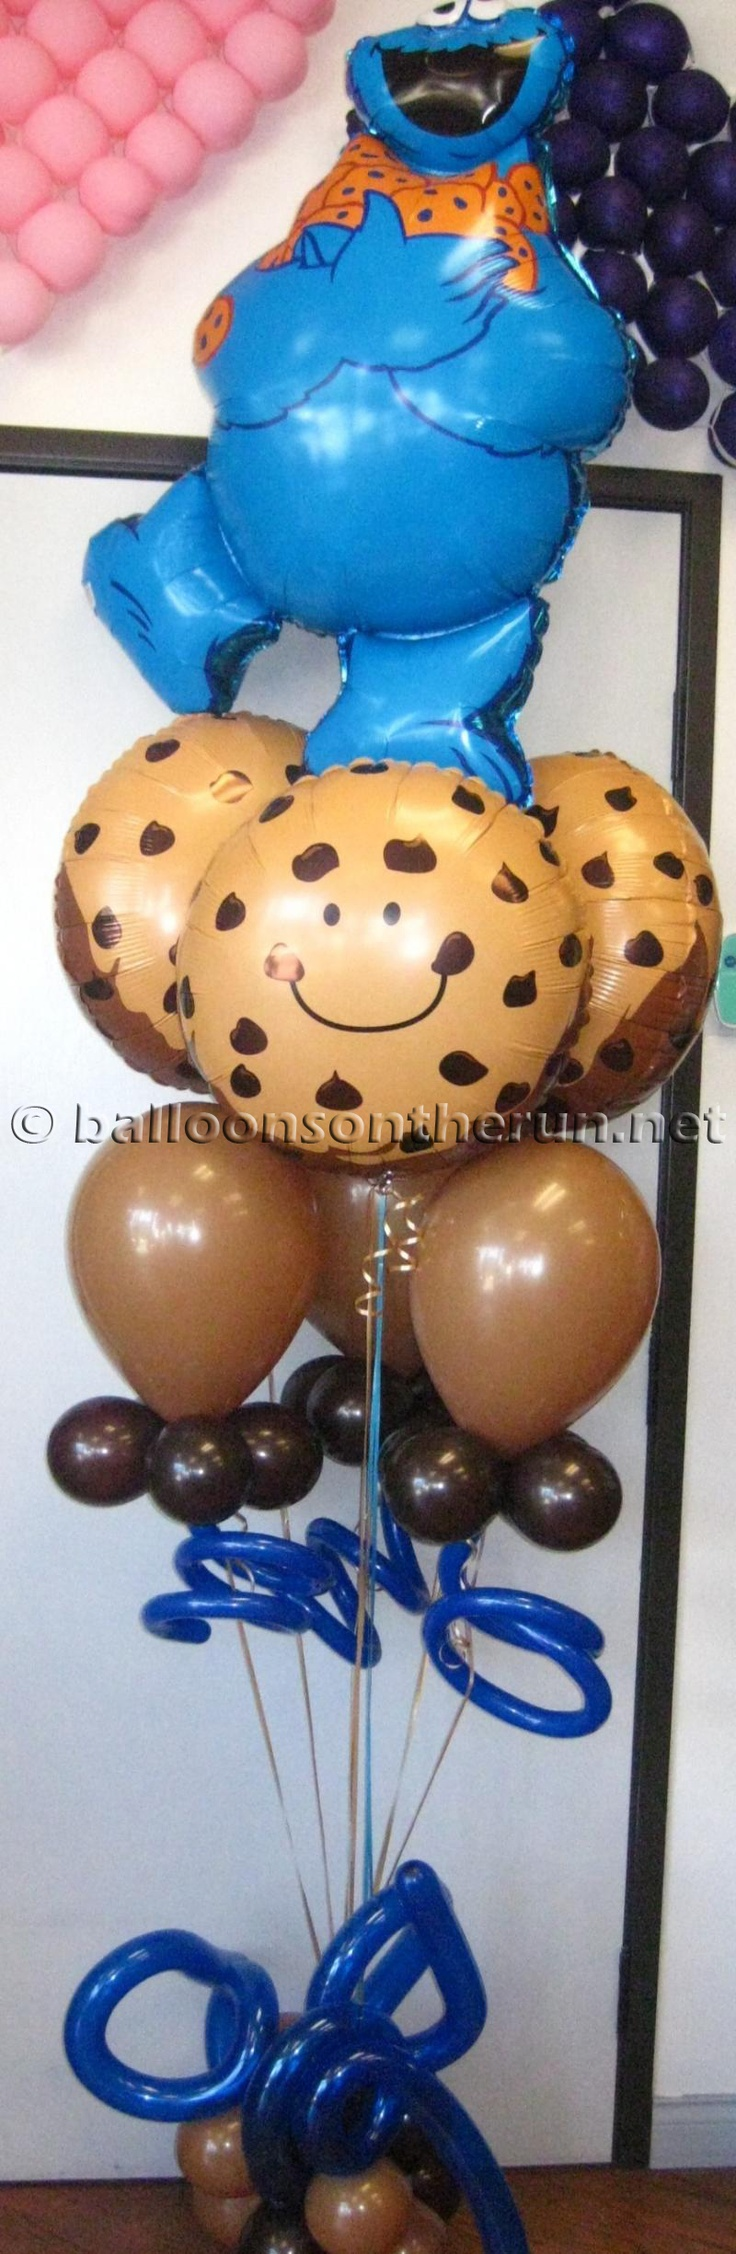 Best images about sesame street balloon ideas on